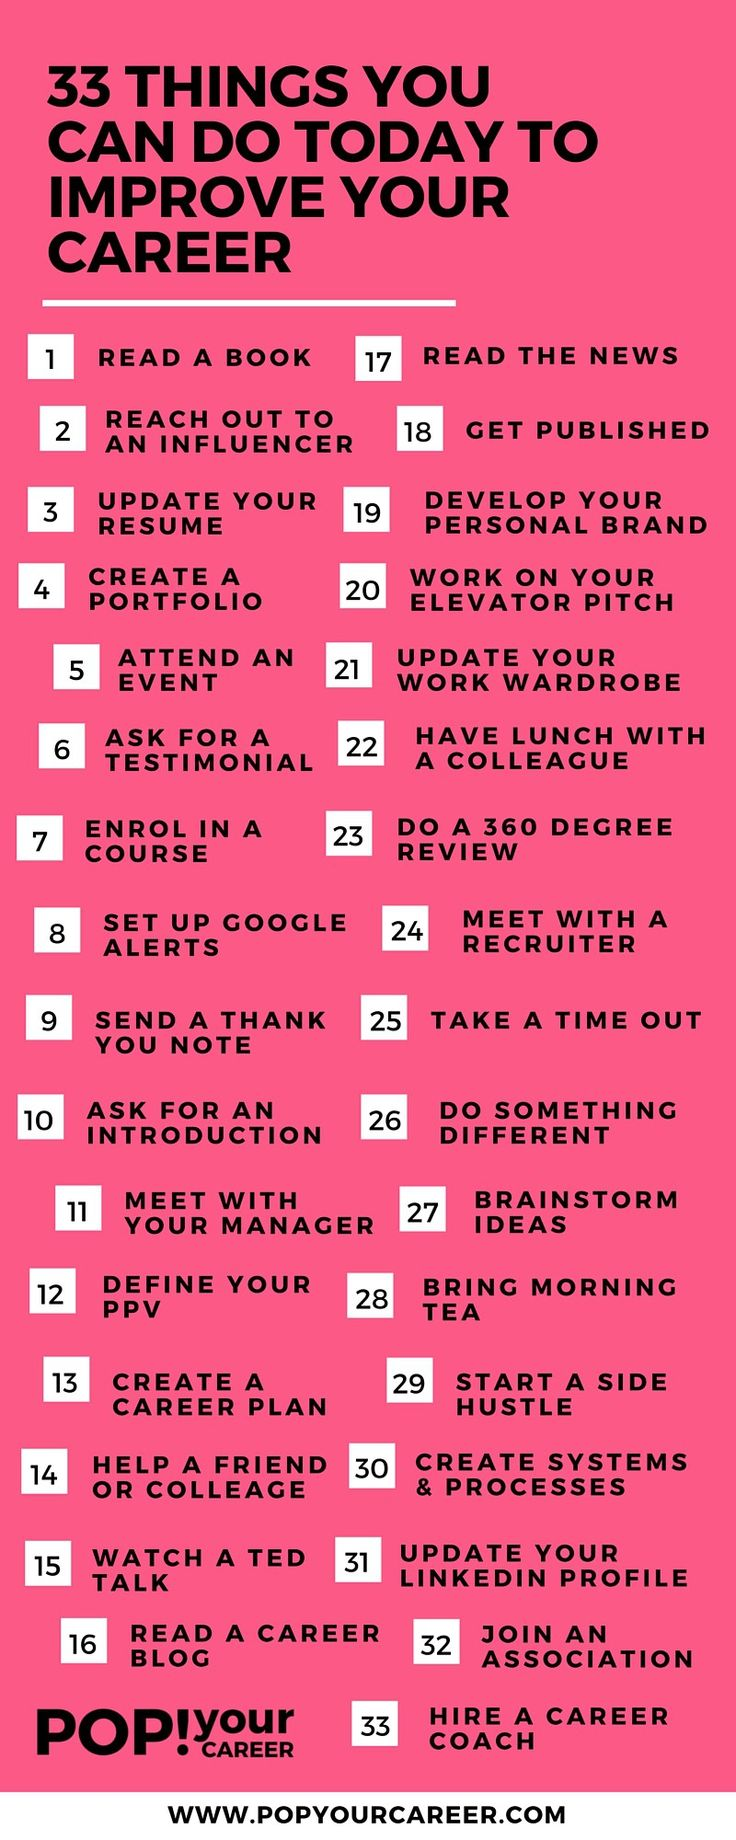 17 best images about employment resources 33 things you can do today to improve your career